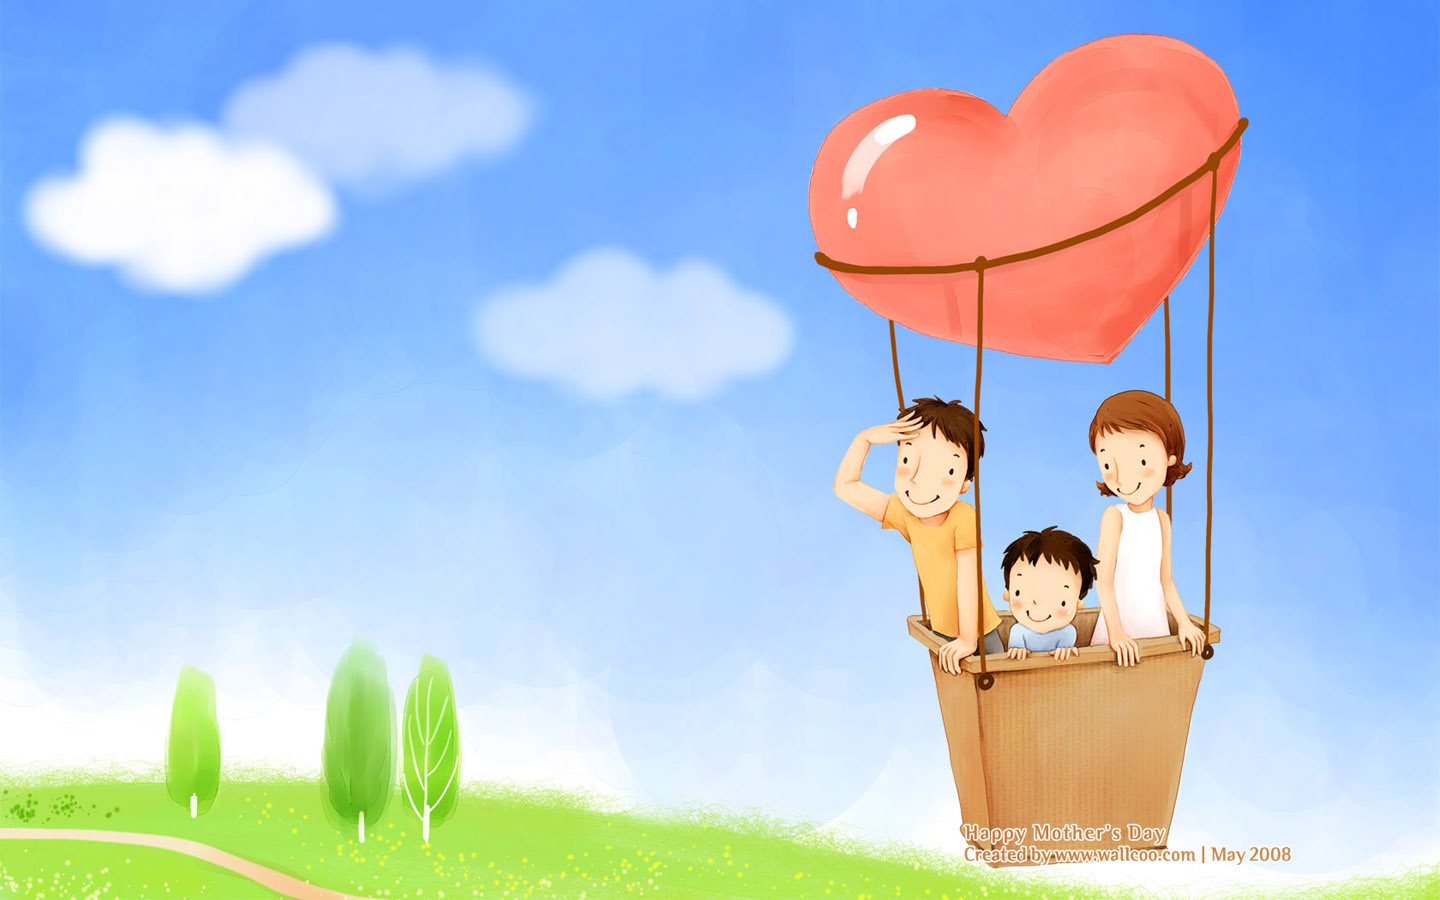 Parents Love Desktop Wallpaper : I Love My Family Wallpaper - WallpaperSafari